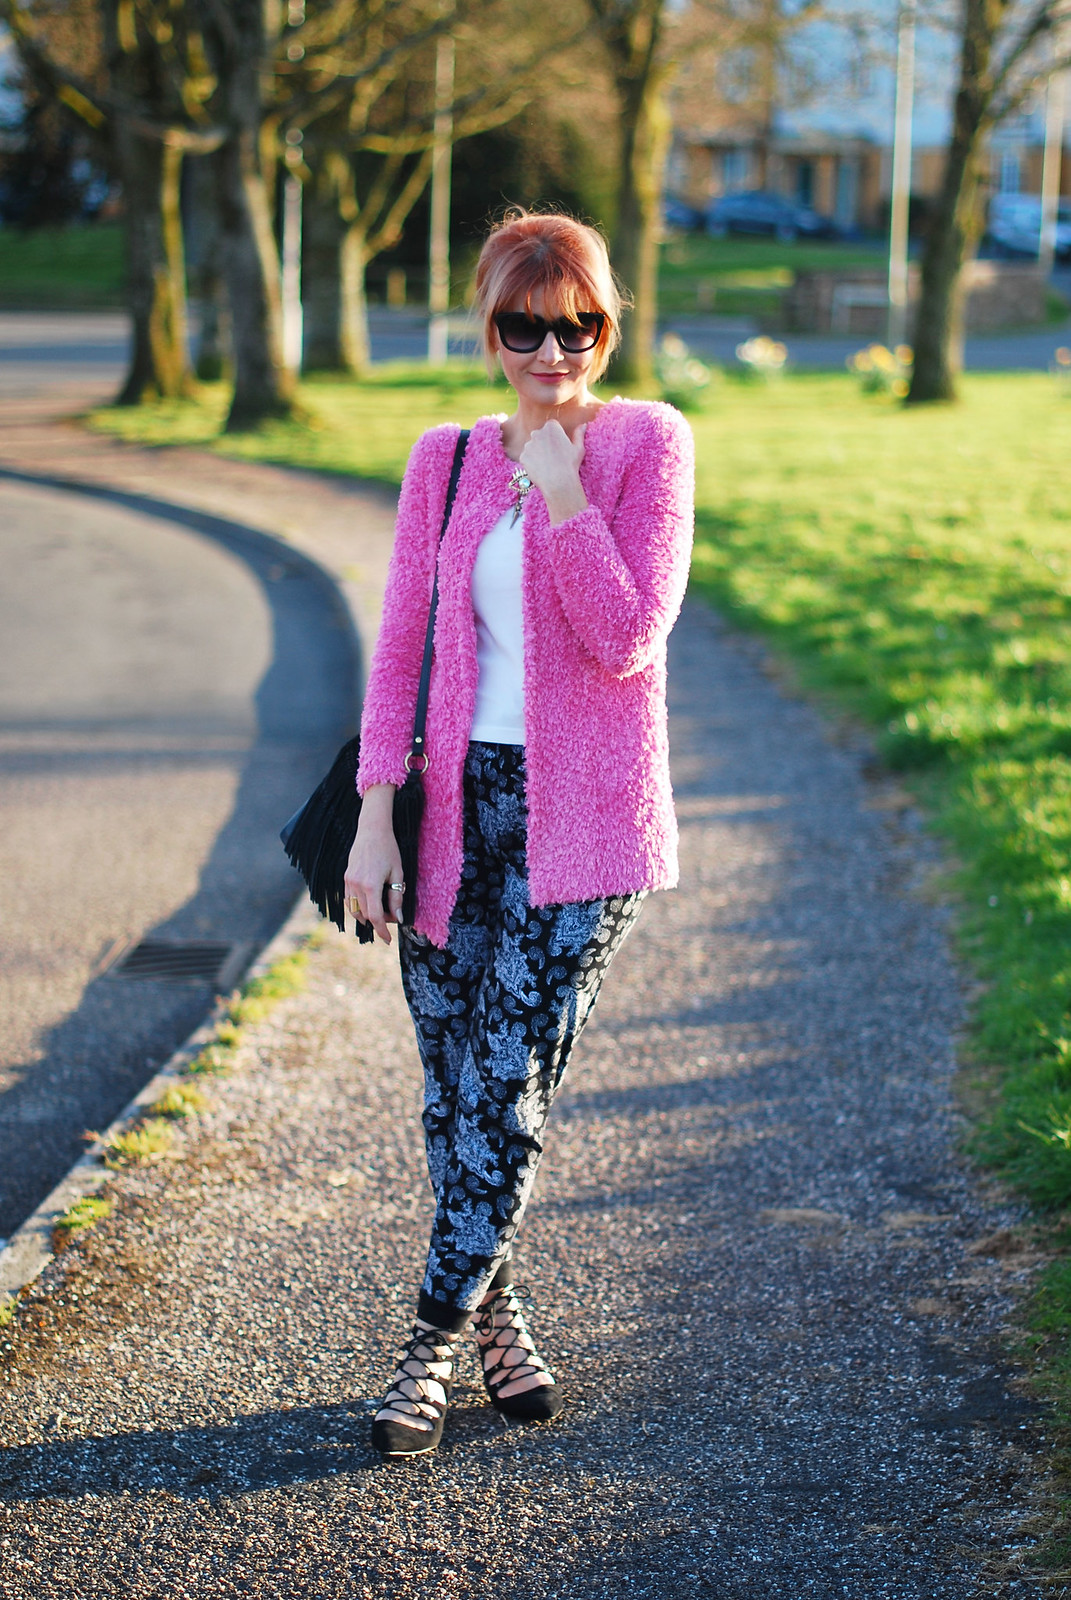 Spring style: Fluffy pink cardigan, paisley joggers, black lace up pointed flats, up do, cat eye sunglasses, evil eye brooch